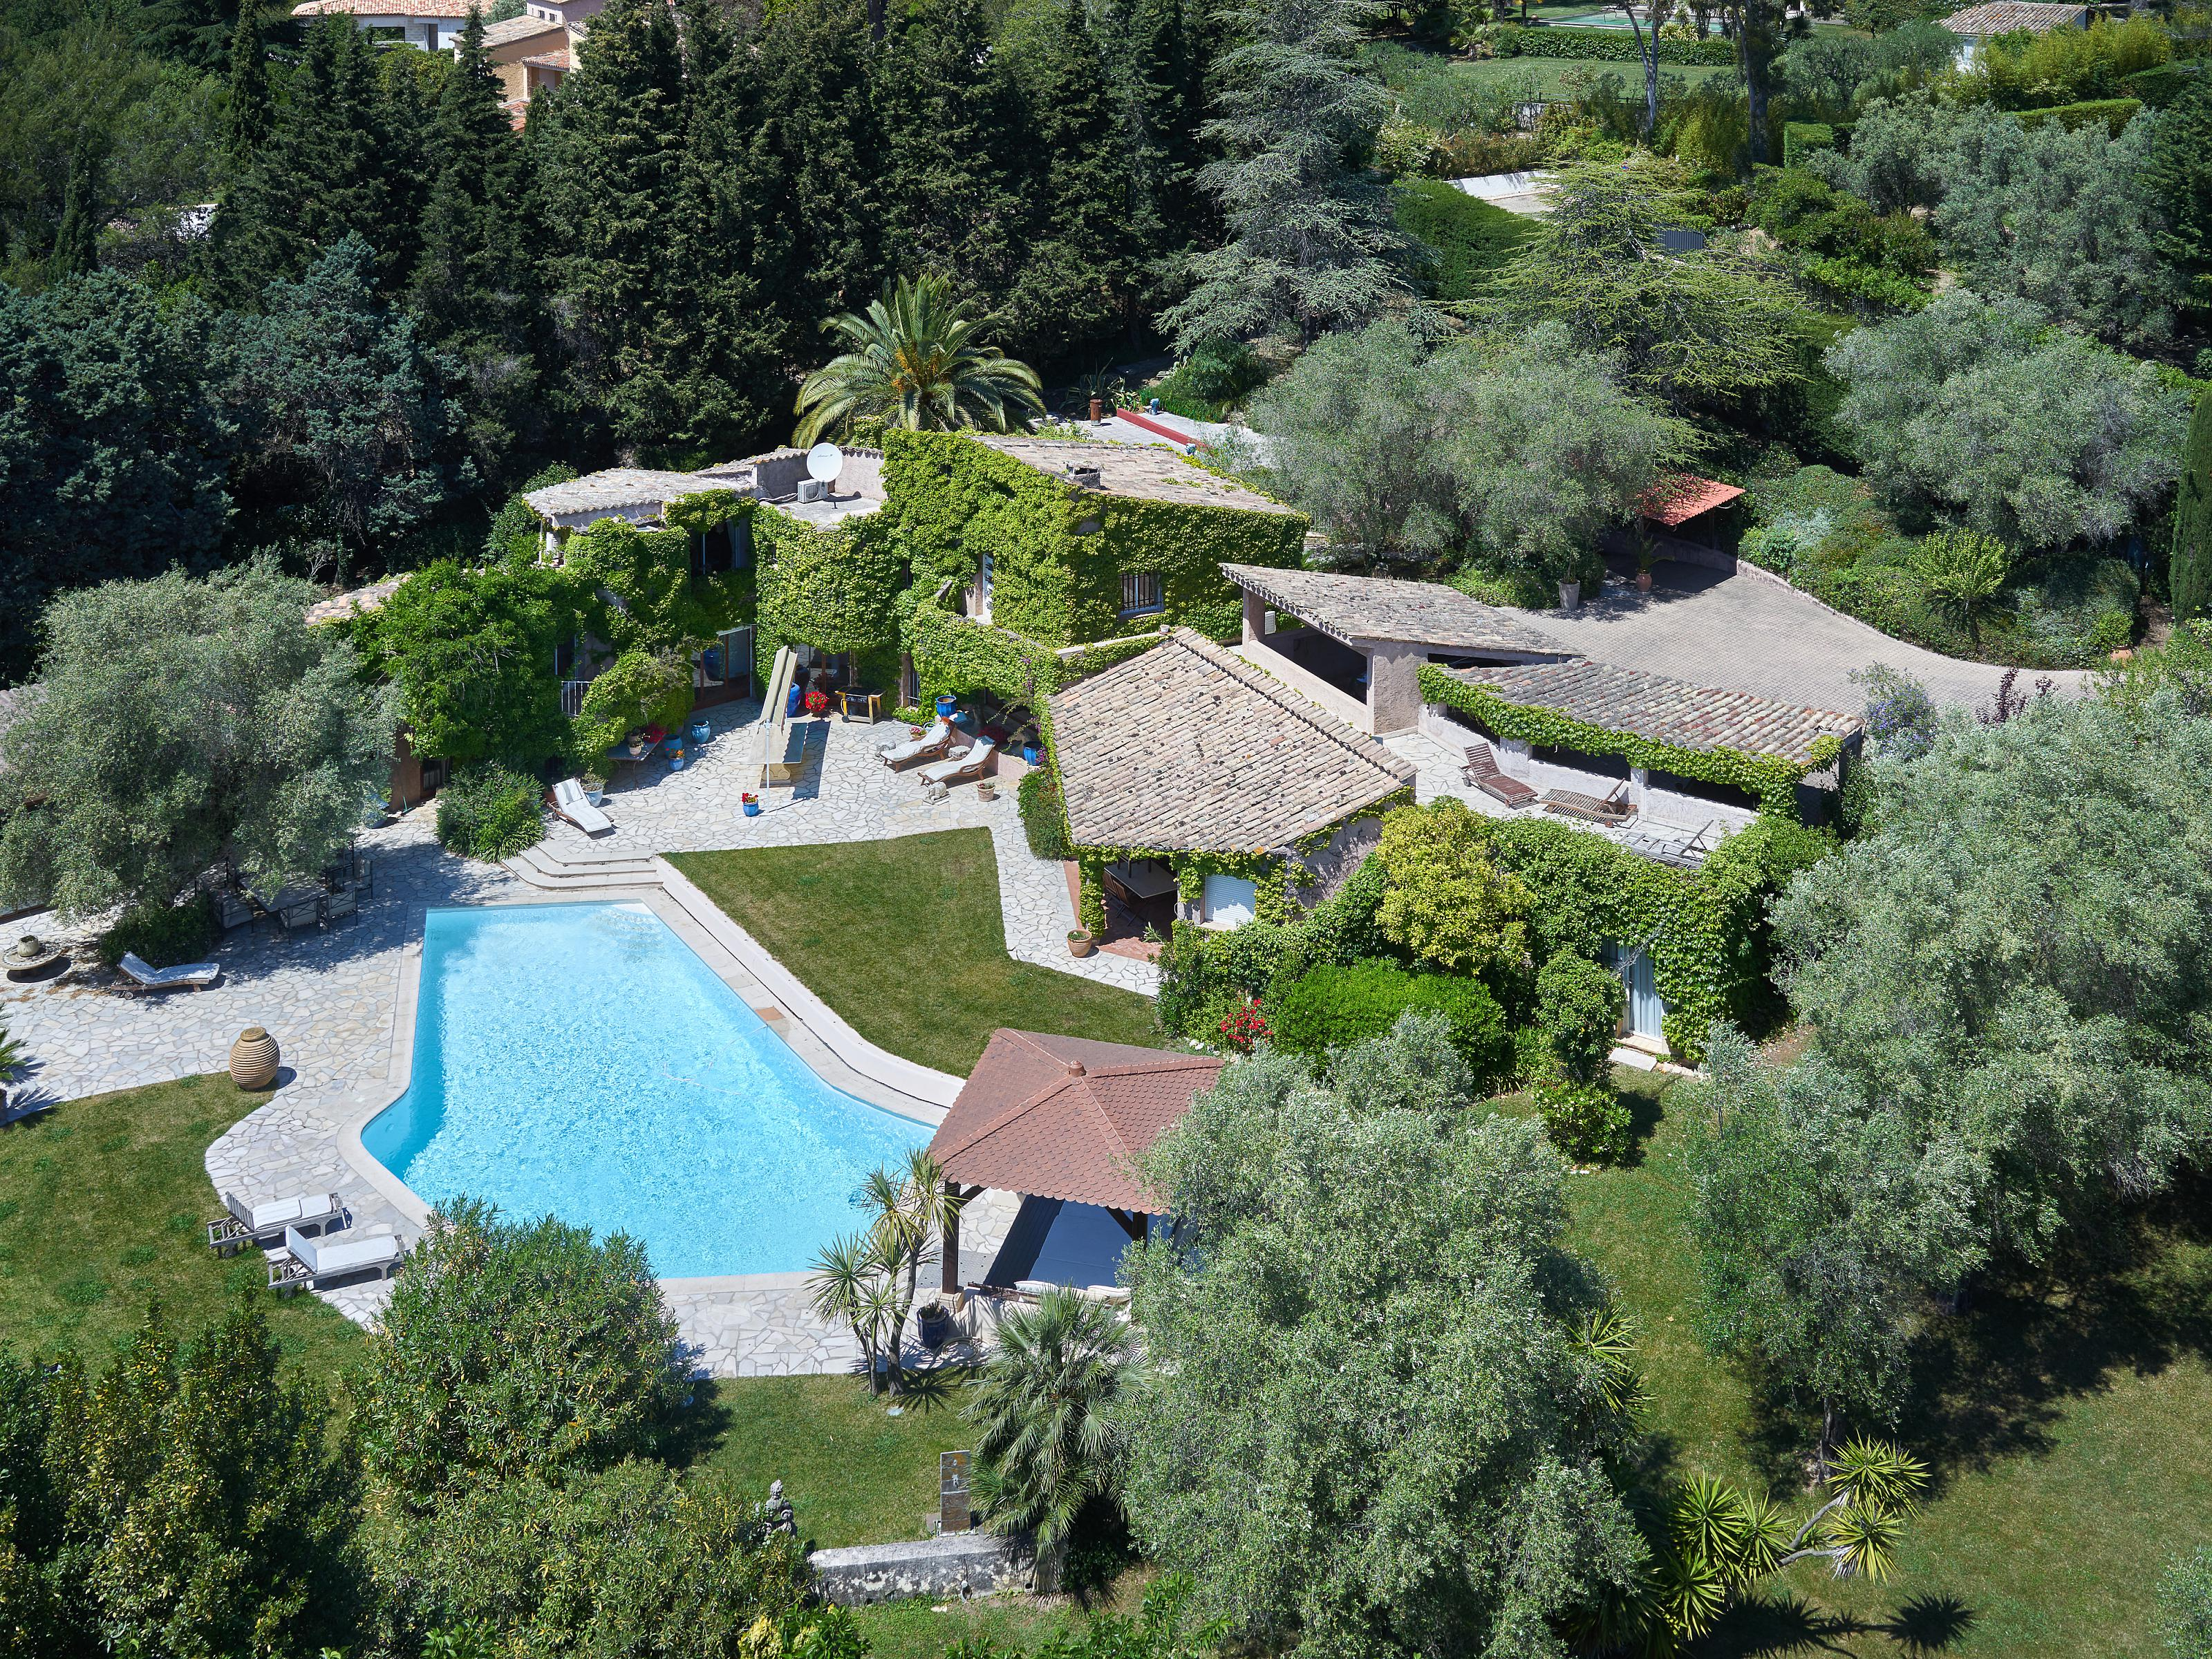 Single Family Home for Sale at Luxury property for sale - best deal of Mougins Mougins, Provence-Alpes-Cote D'Azur 06250 France